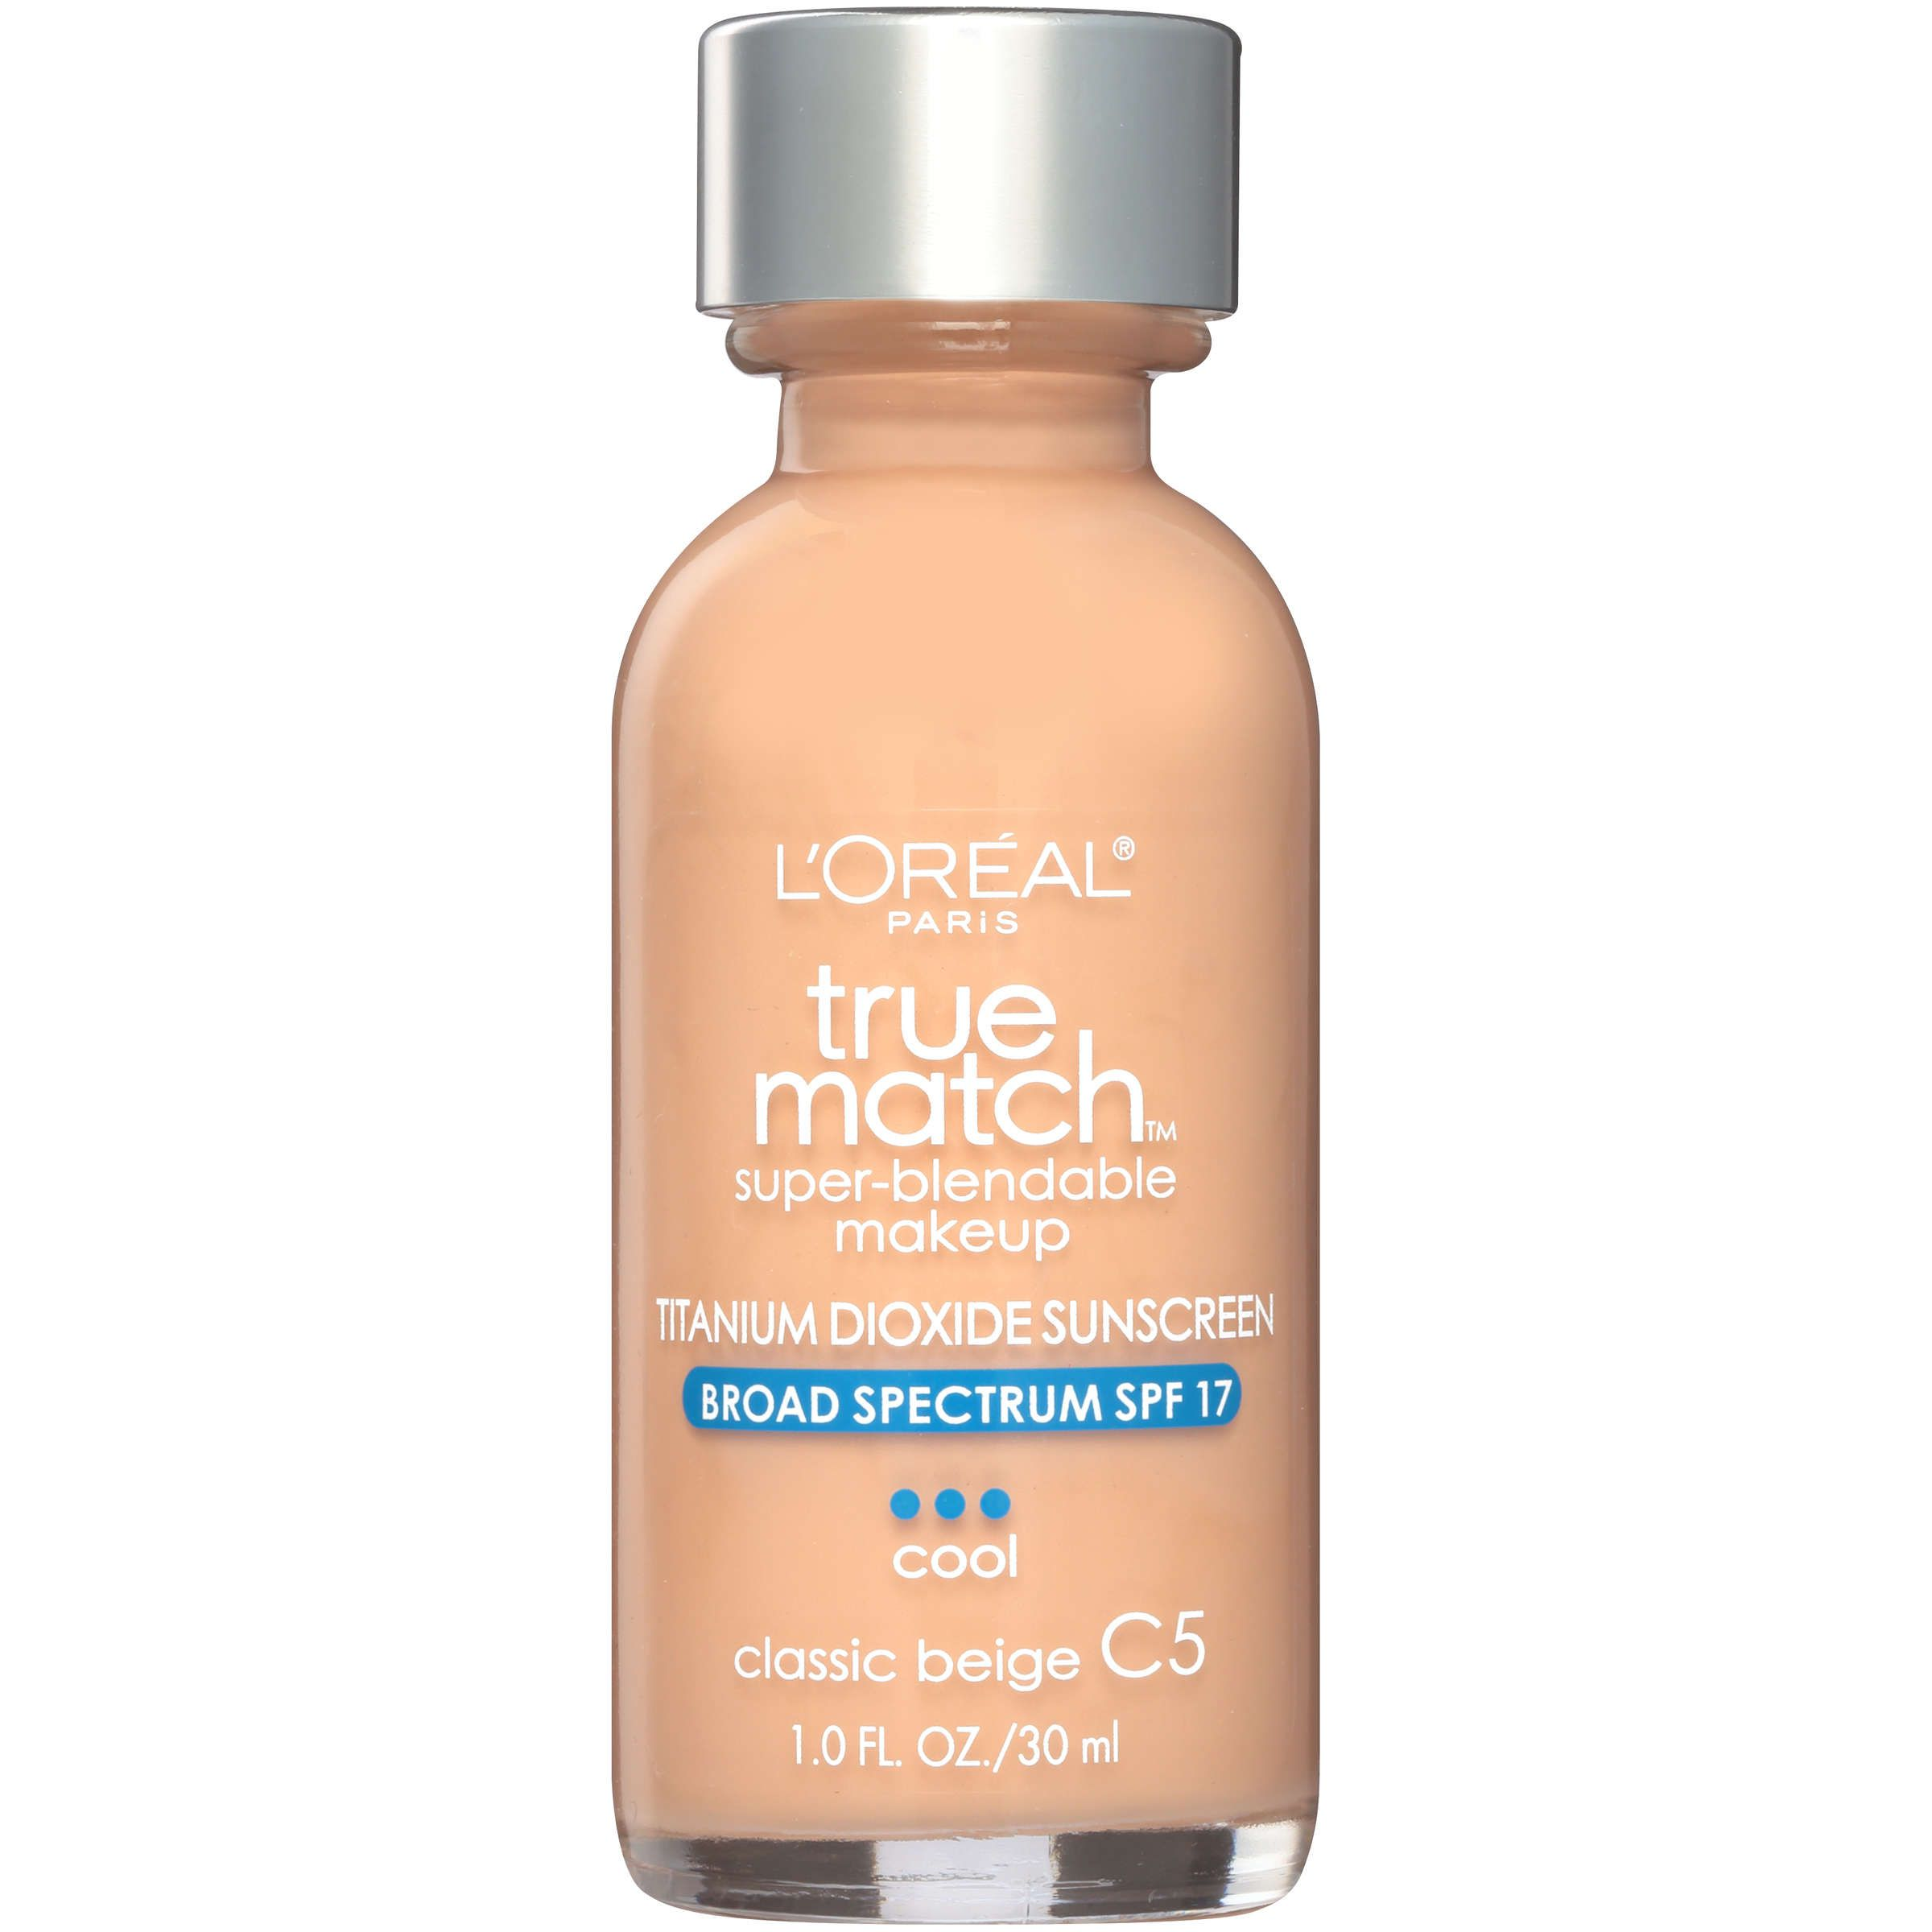 The 10 Best Full Coverage Foundations at Walmart in 2019